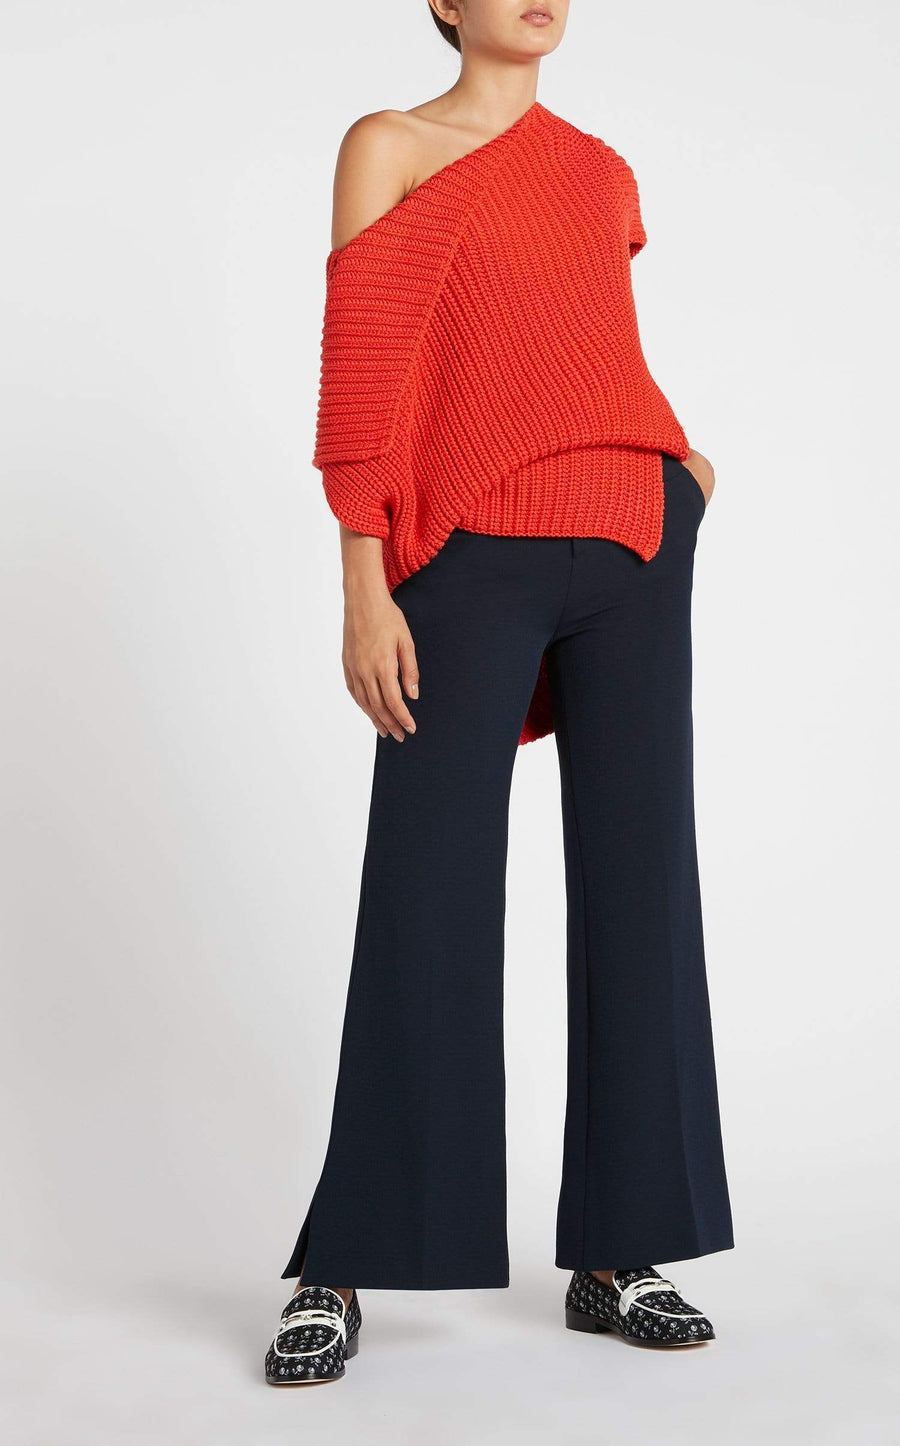 Moran Top In Poppy Red from Roland Mouret